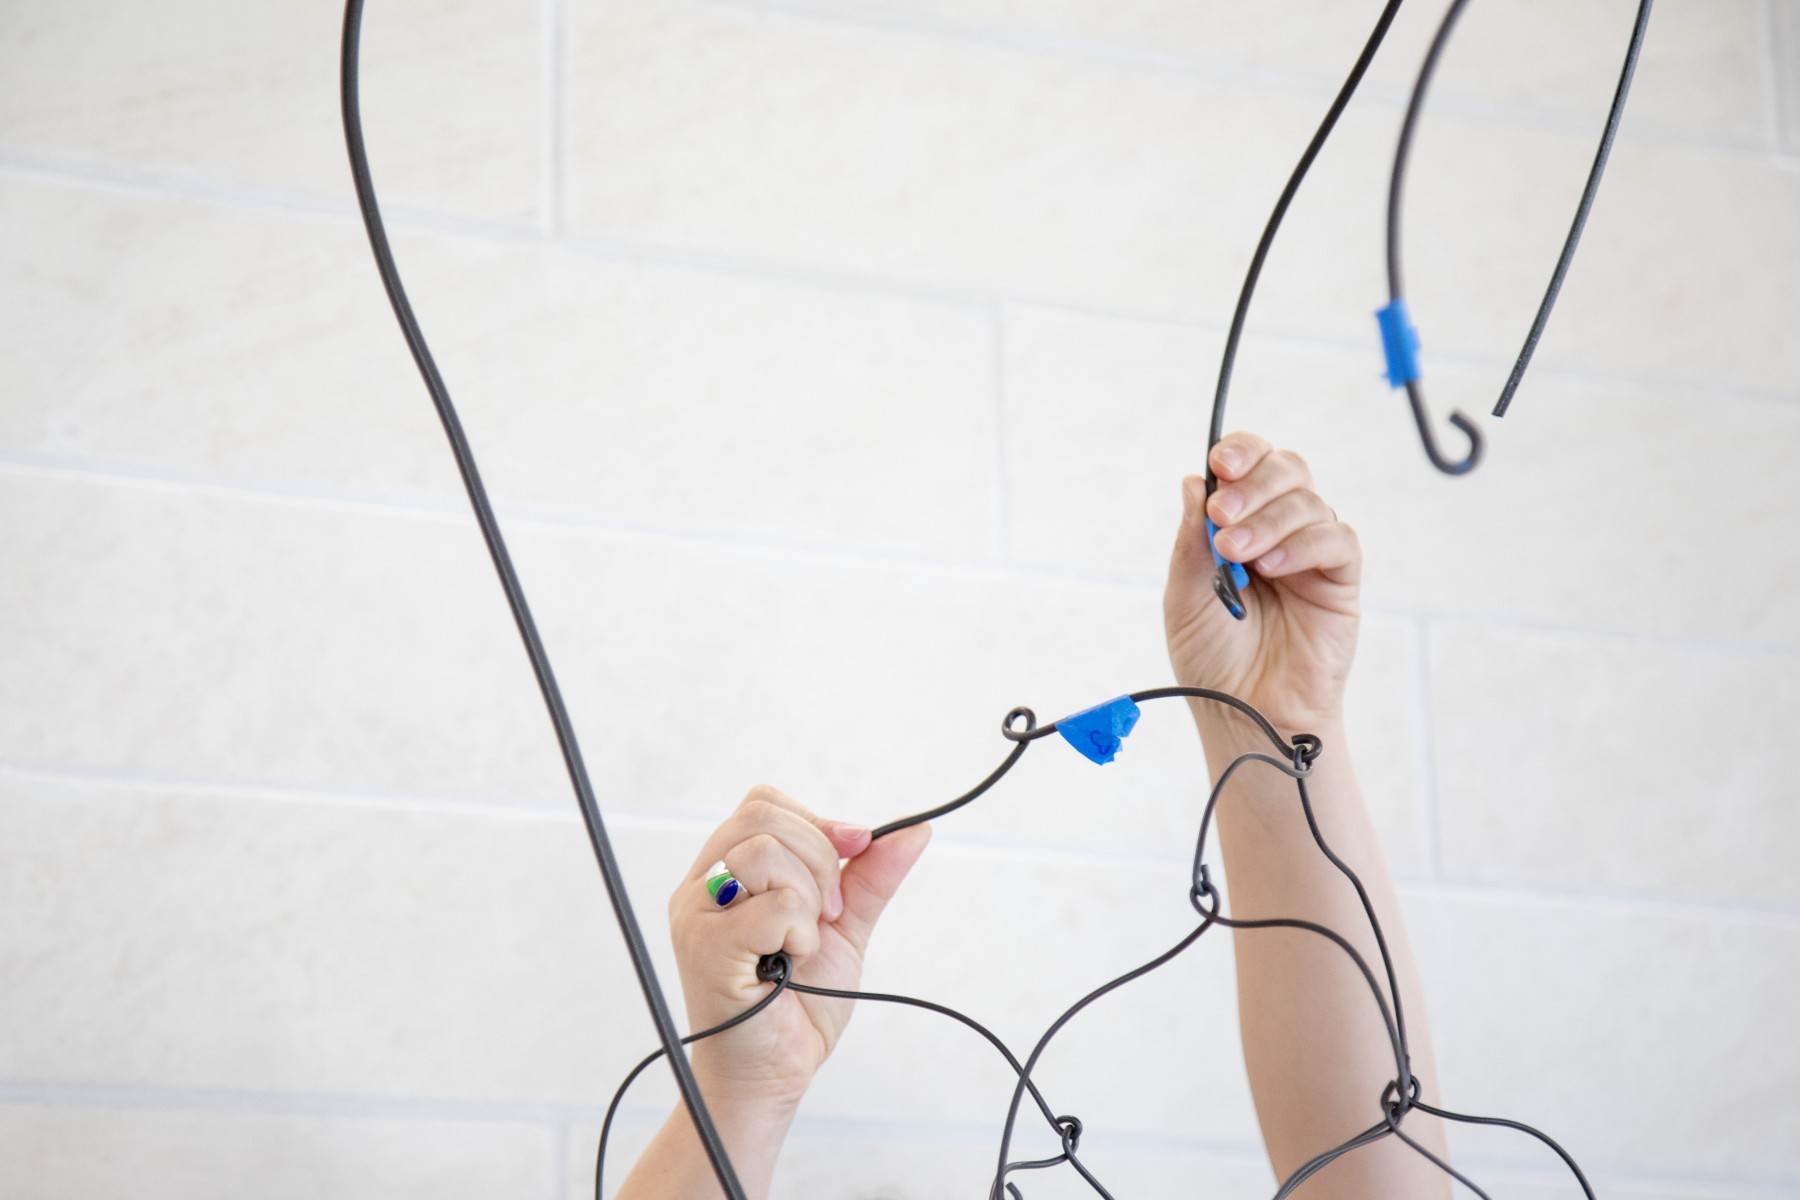 install process of mobile made of wire